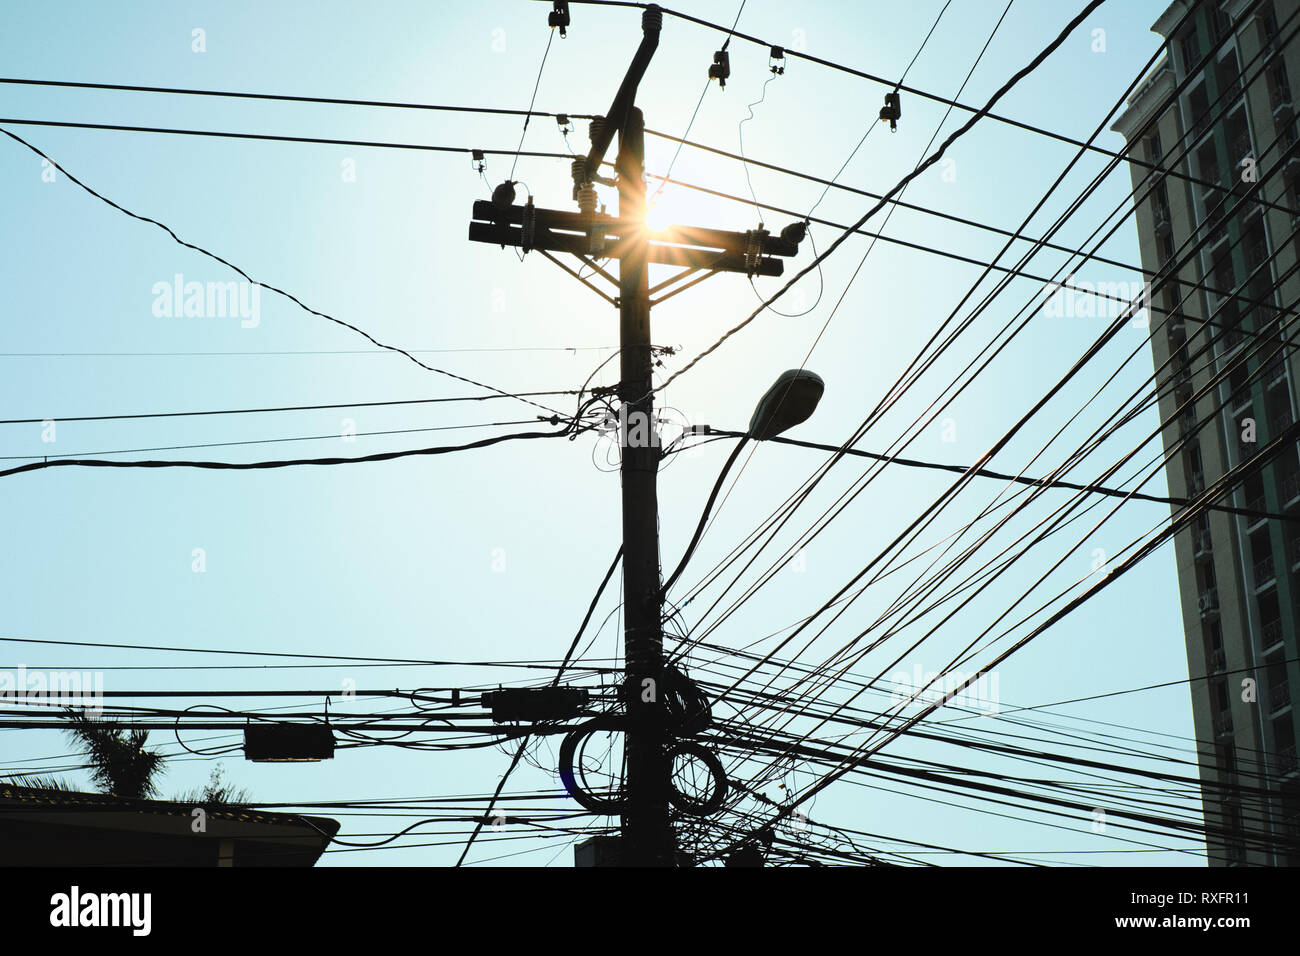 hight resolution of low angle view of concrete post for street lamp and electric wires at dusk thick network of cables in silhouette hanging on a pole in panama city co